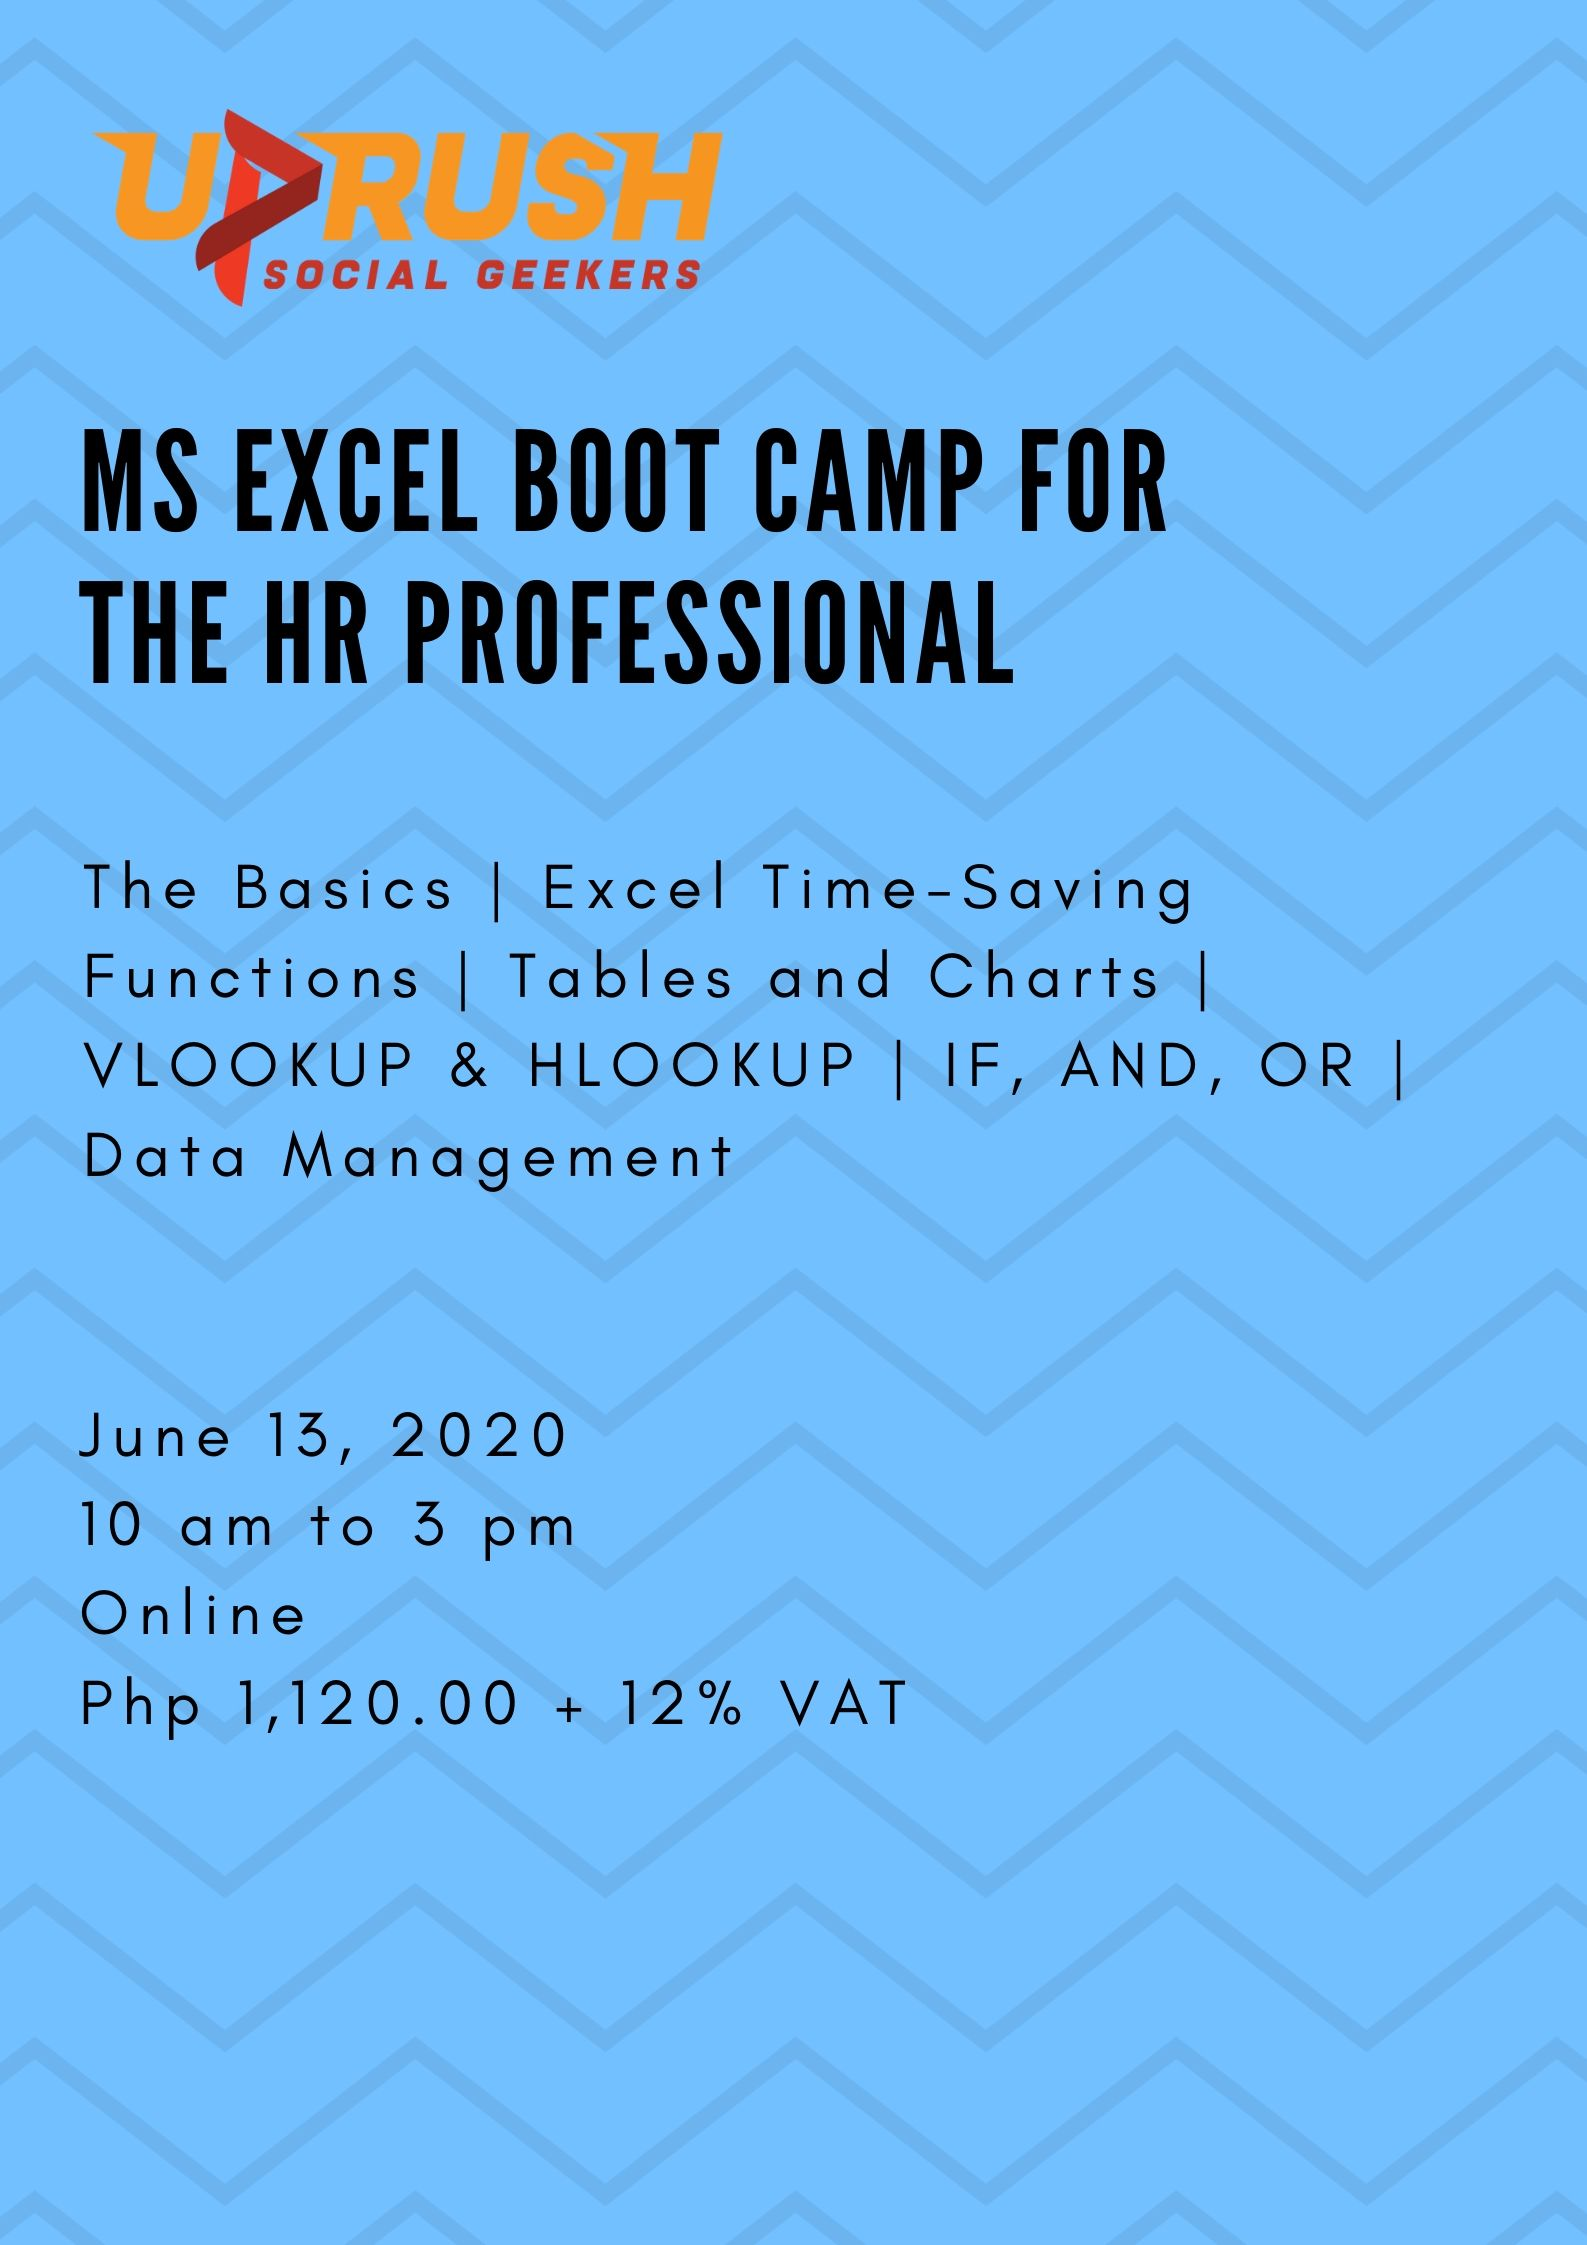 MS Excel Boot Camp for HR Professionals